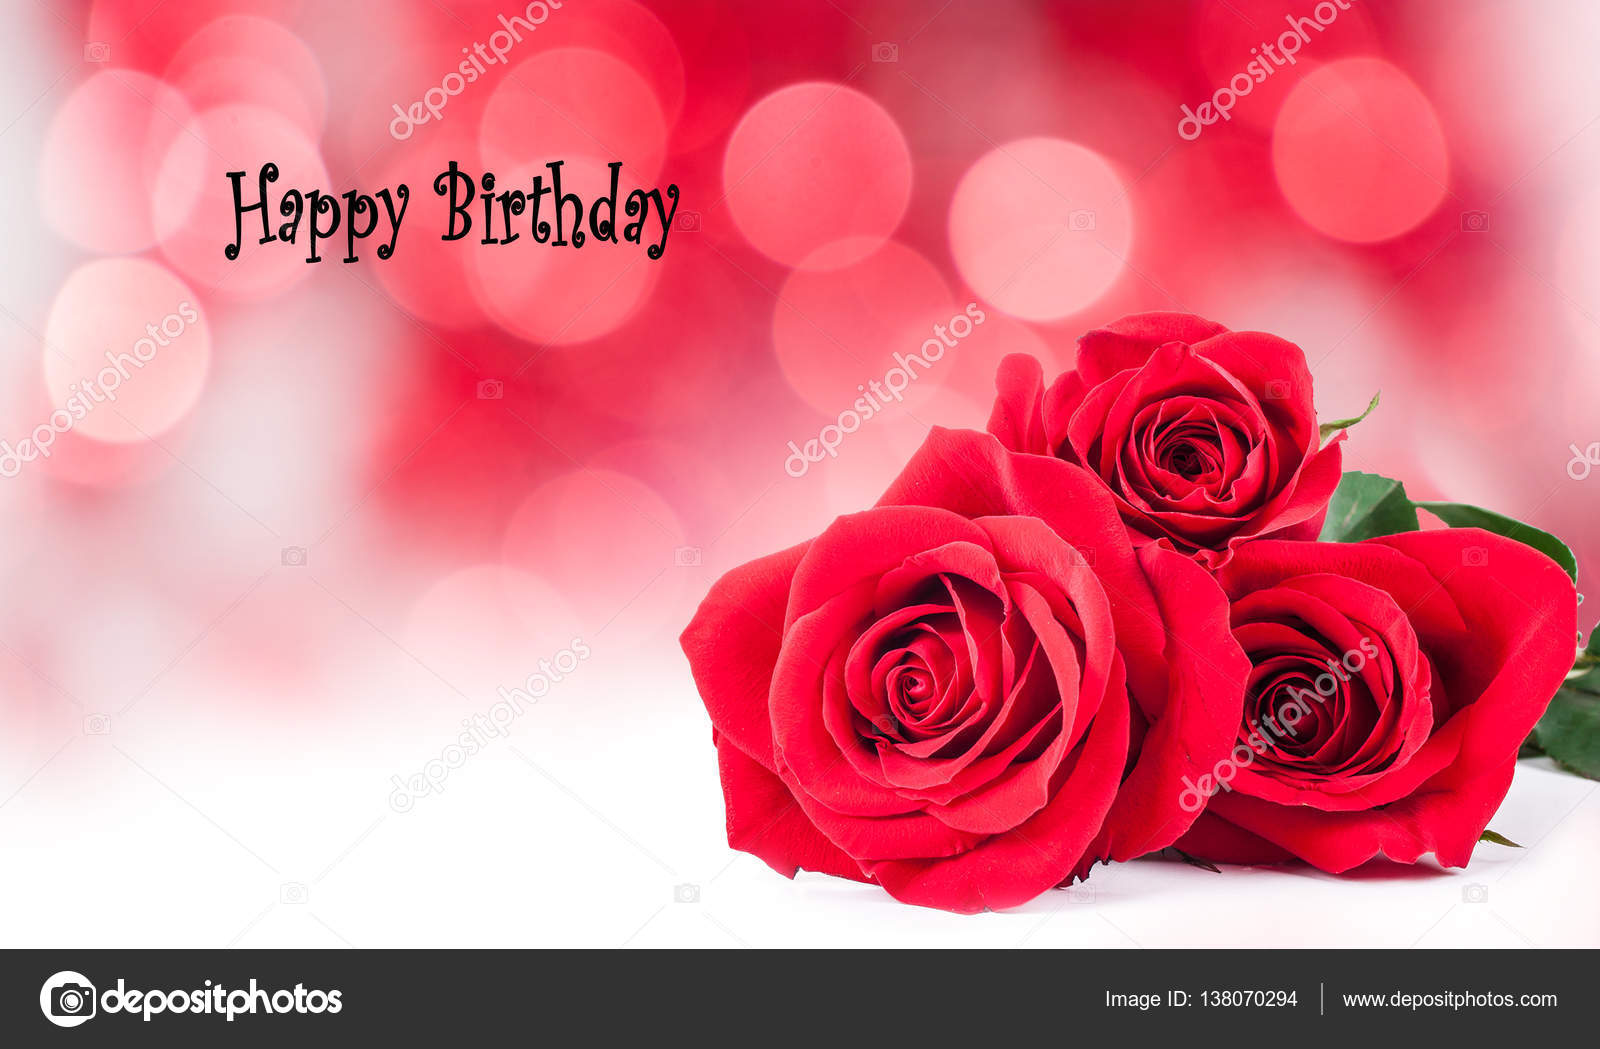 Birthday Cards With Red Roses Stock Image